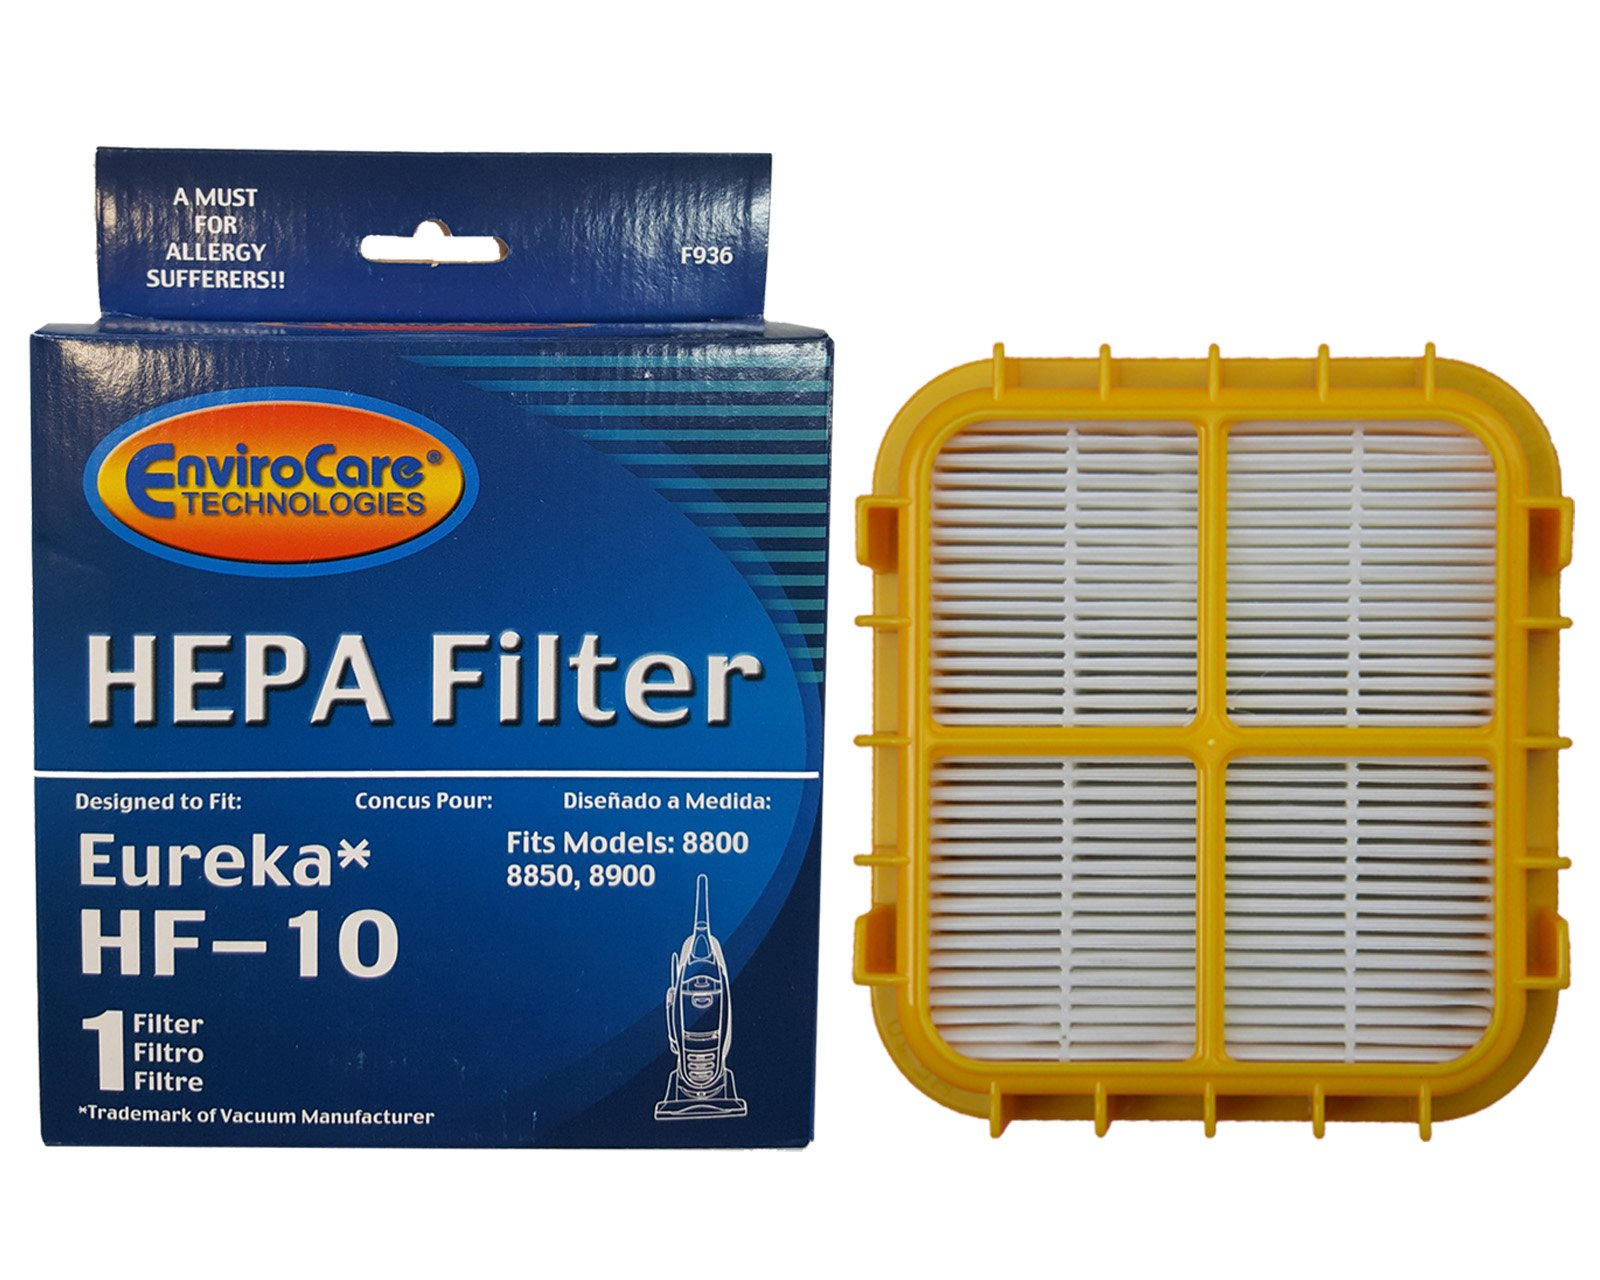 (25) Eureka Hf-10 Pleated Hepa Filter W/activated Charcoal Vacuum Filter, Upright, Boss Capture, Pet Lover Vacuum cleaners, 63347A, 633489, 67810-2, H14017, 63358